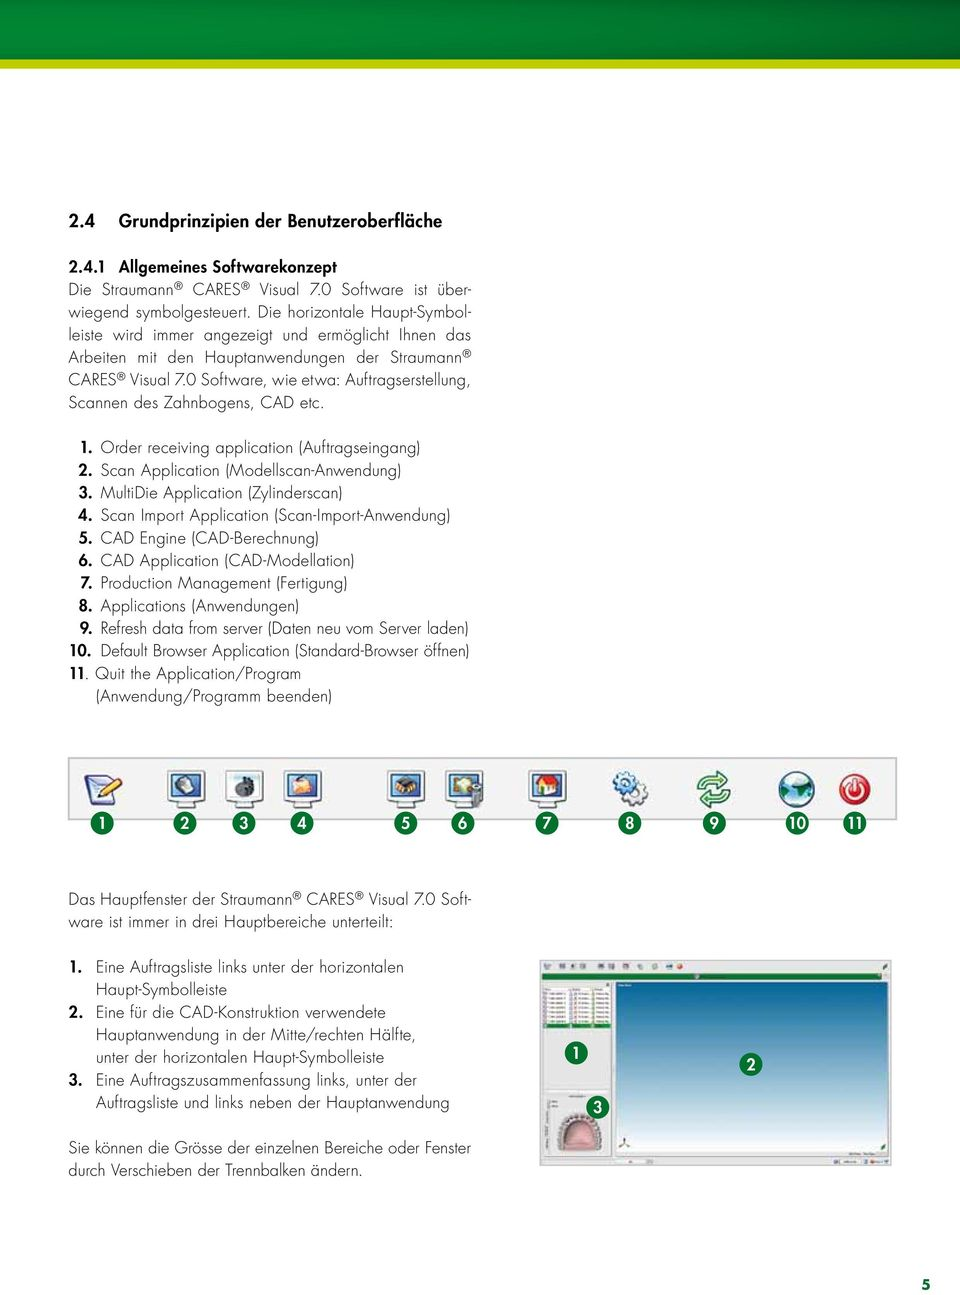 0 Software, wie etwa: Auftragserstellung, Scannen des Zahnbogens, CAD etc. 1. Order receiving application (Auftragseingang) 2. Scan Application (Modellscan-Anwendung) 3.